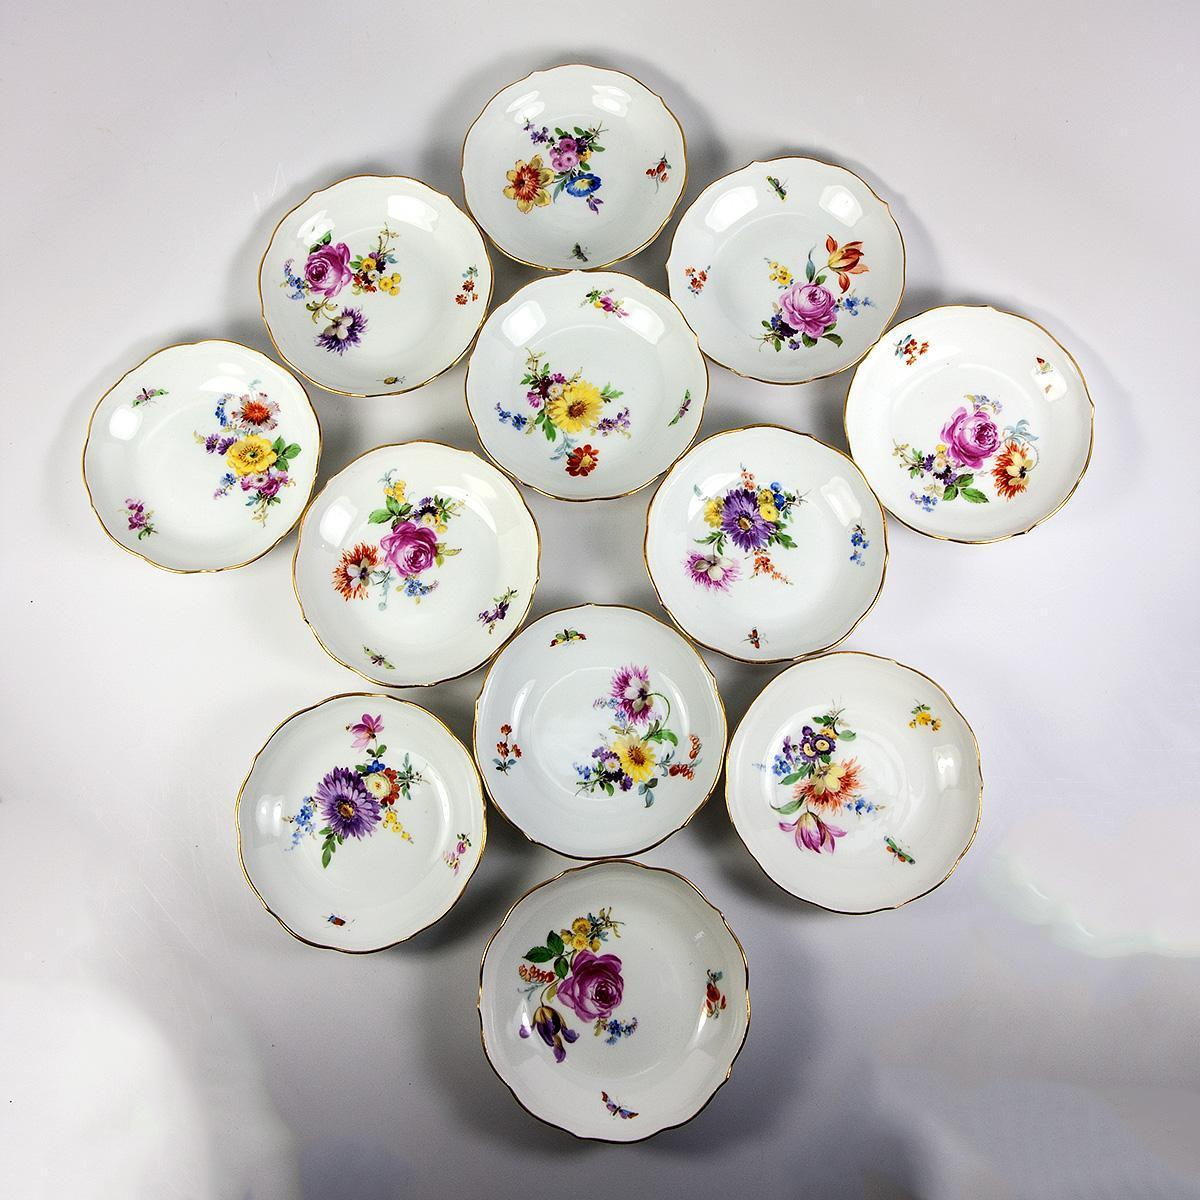 Set of 12 Hand Painted MEISSEN Fruit Bowls, 19th c. Floral & Bug, Gold Rim